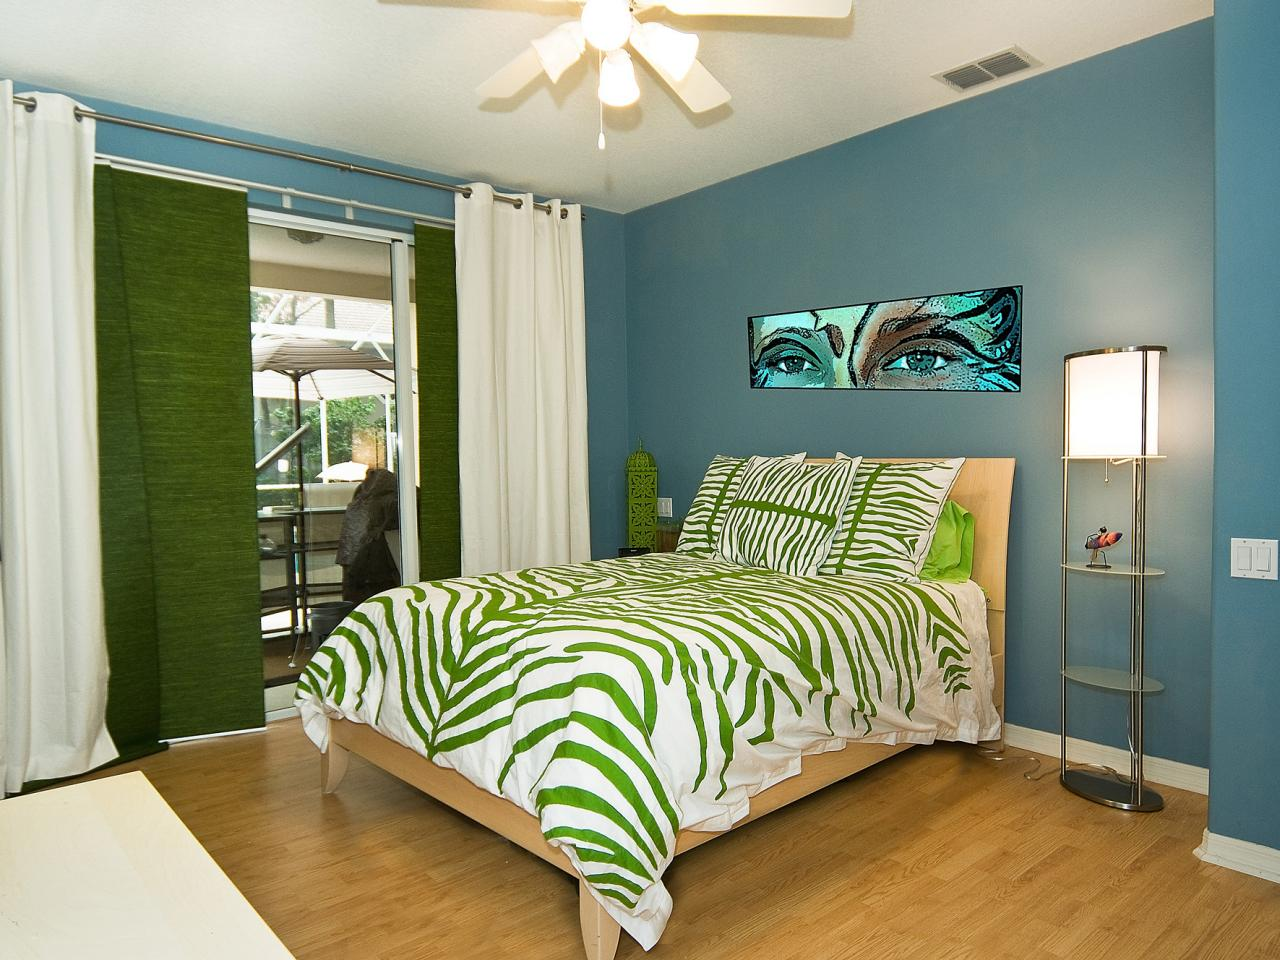 Sassy and sophisticated teen and tween bedroom ideas Modern bedroom ideas for girls